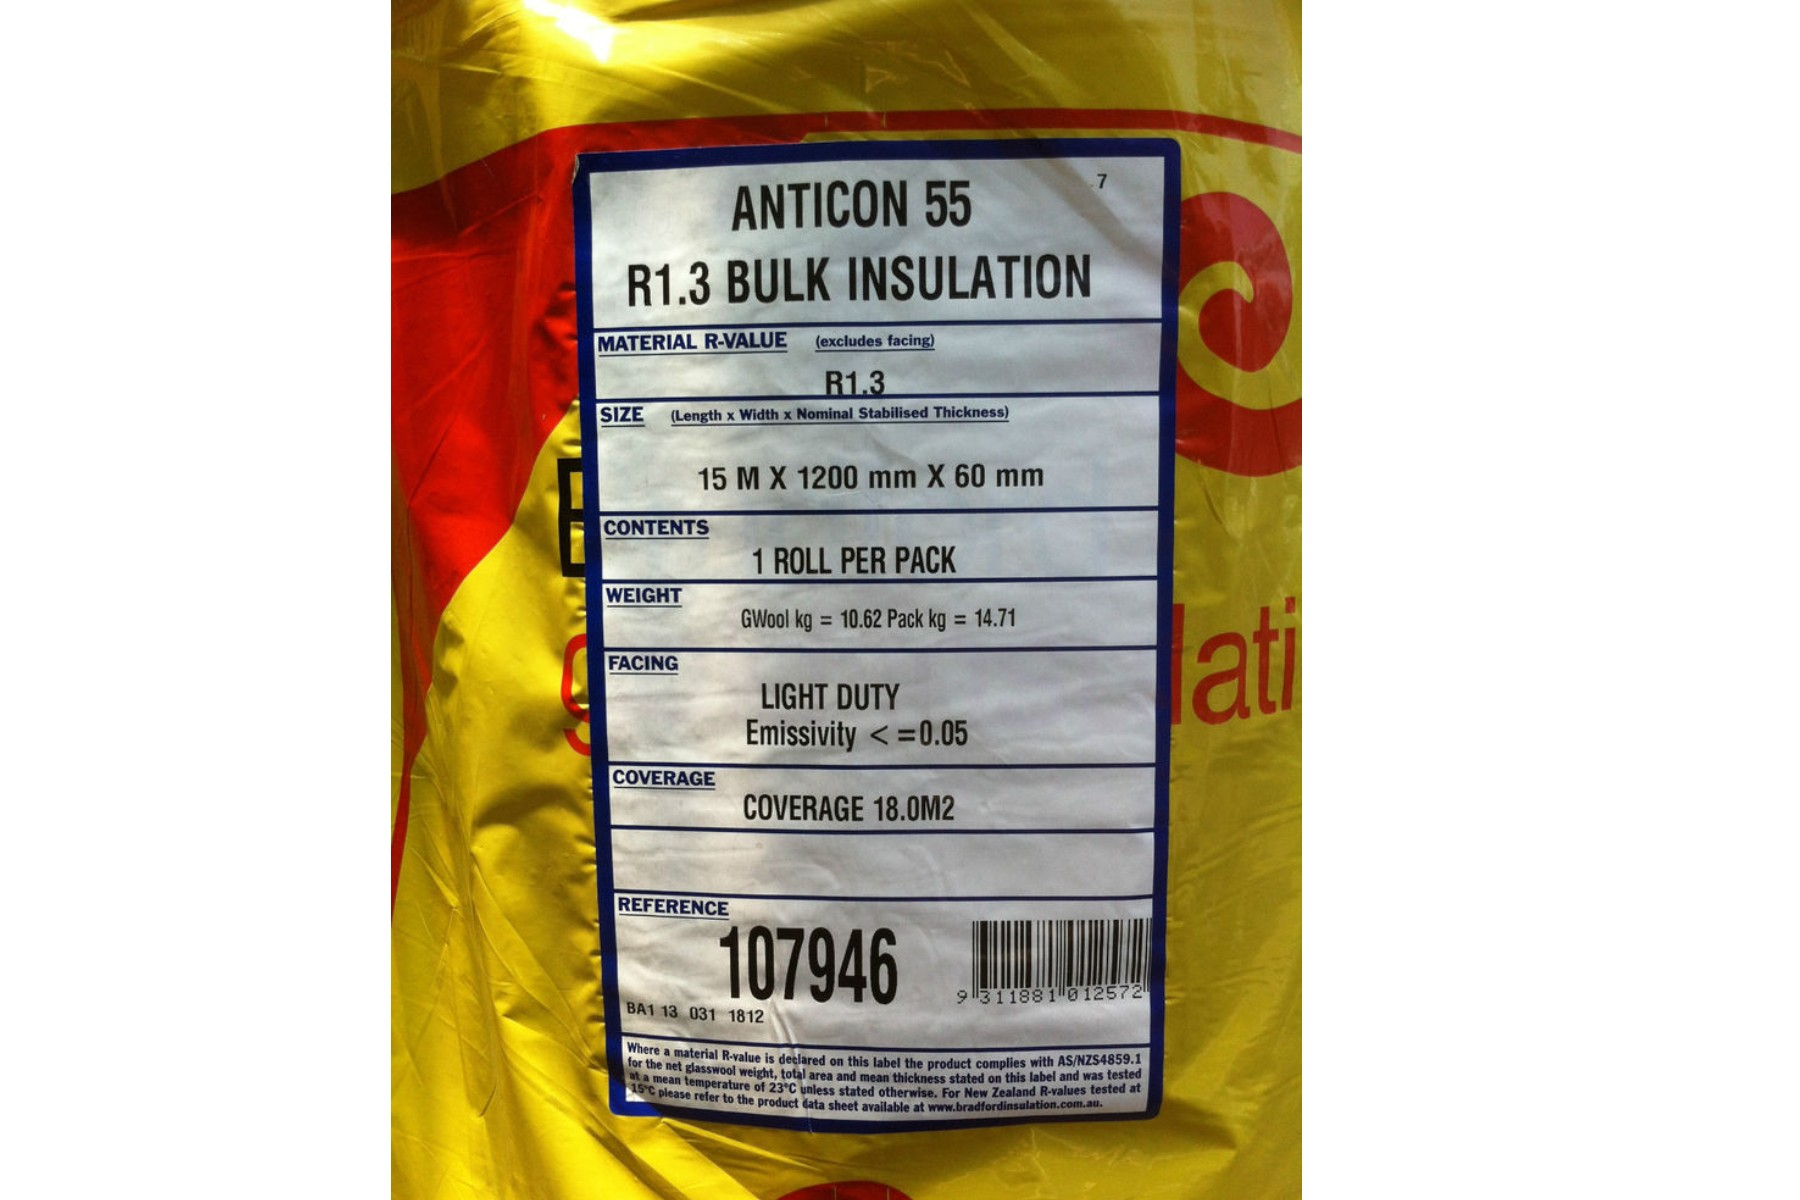 35 Anticon Blanket 11kg M 179 With Md Foil Mmcom Pty Ltd